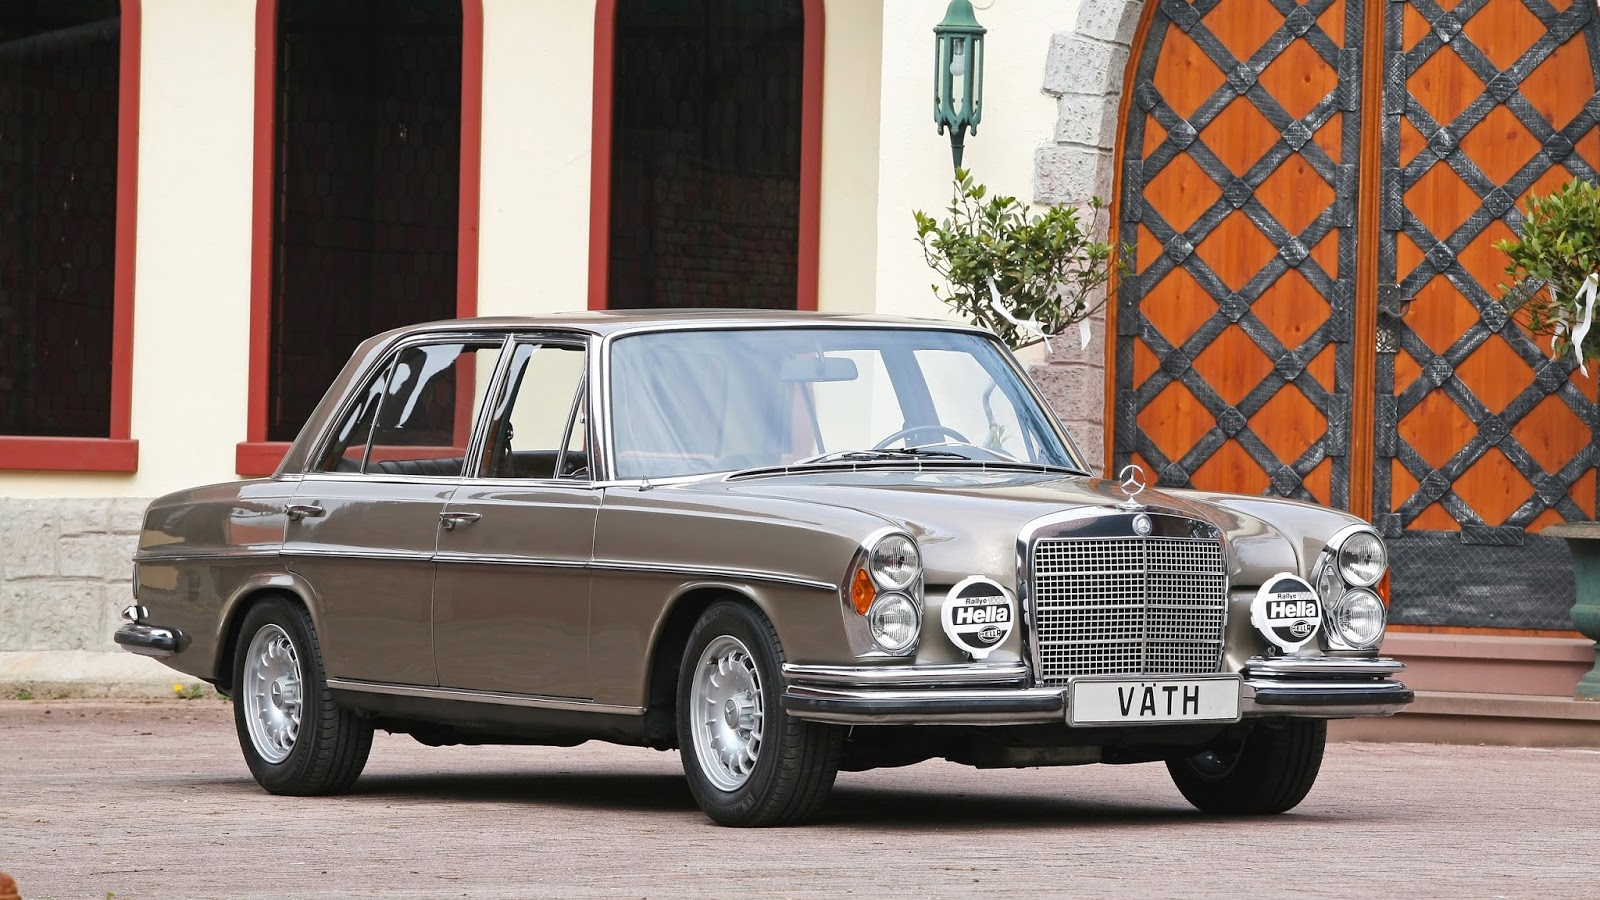 Vth Motorentechnik Mercedes Benz 300 Sel W109 1968 63 V8 247 Cv 1995 Chevy 6 5 Turbo Its Well Known That Such Rarities As The Presented Are In Best Hands When They Taken